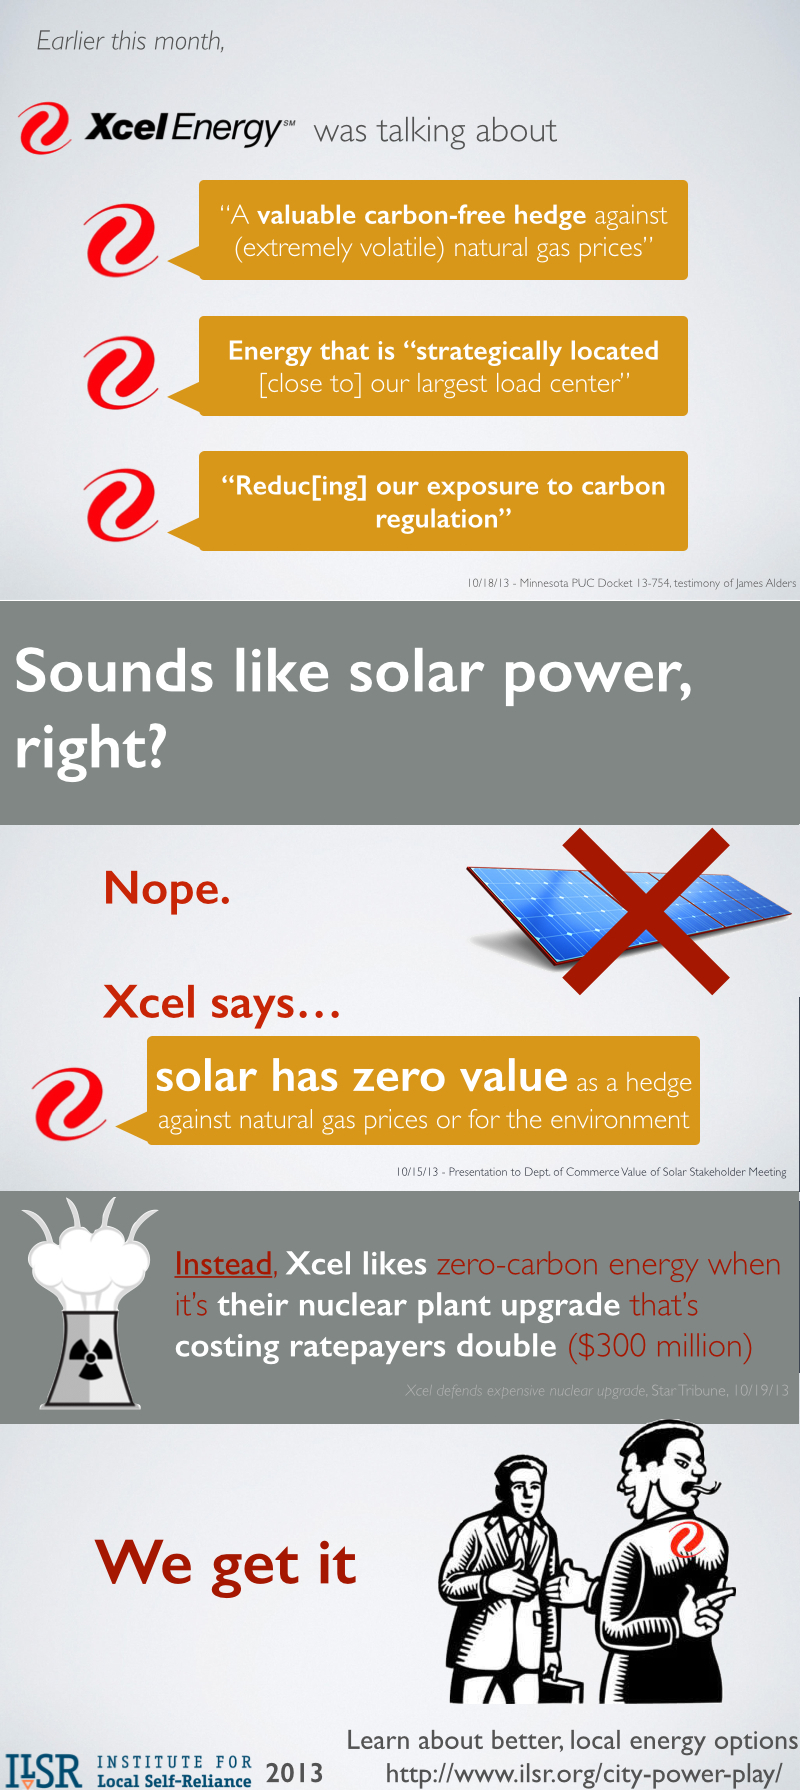 Xcel Two-Faced on Value of Solar Power